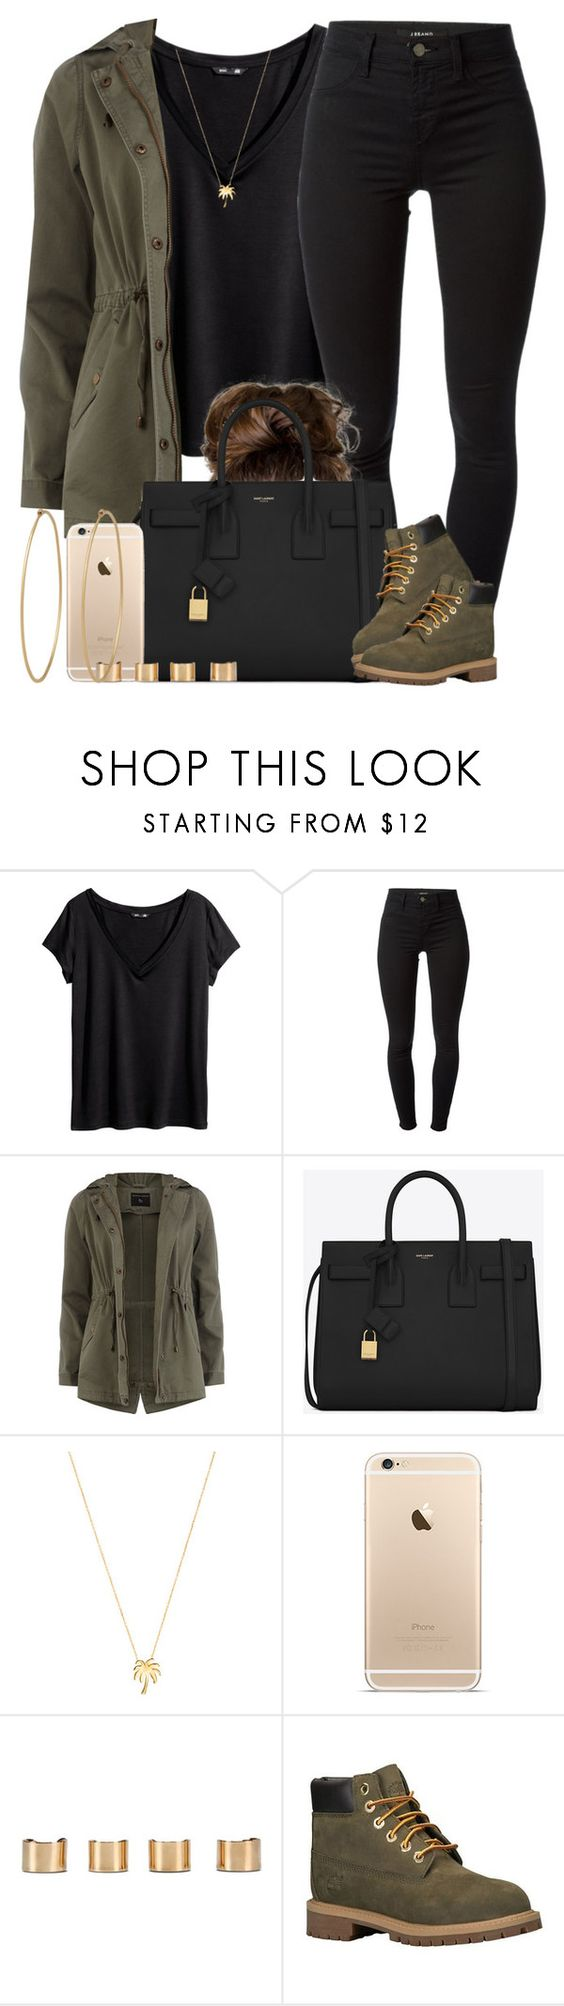 """""""Pull up in that all Black. """" by livelifefreelyy ❤ liked on Polyvore featuring H&M, J Brand, Dorothy Perkins, Yves Saint Laurent, Joolz by Martha Calvo, Maison Margiela, Timberland, Social Anarchy, women's clothing and women's fashion"""